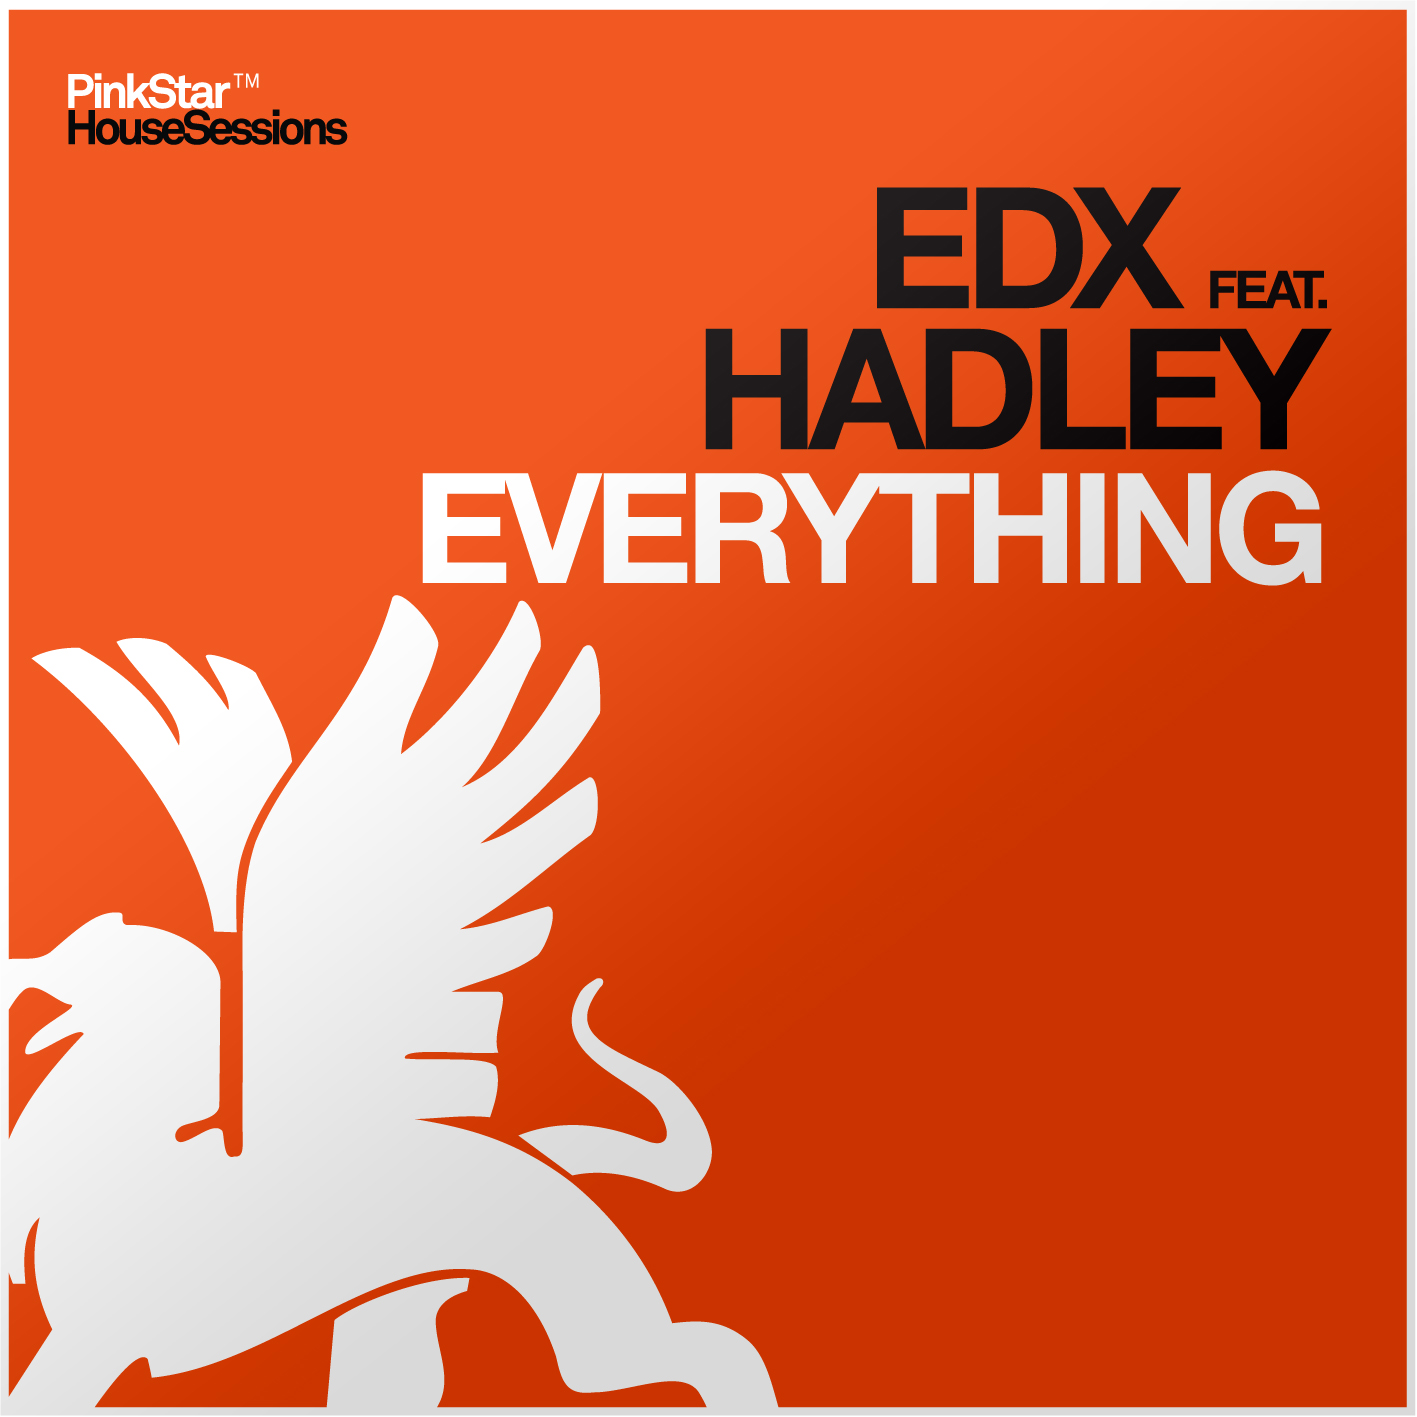 Snippet: EDX Feat. Hadley – Everything (EDX's Arena Mix)